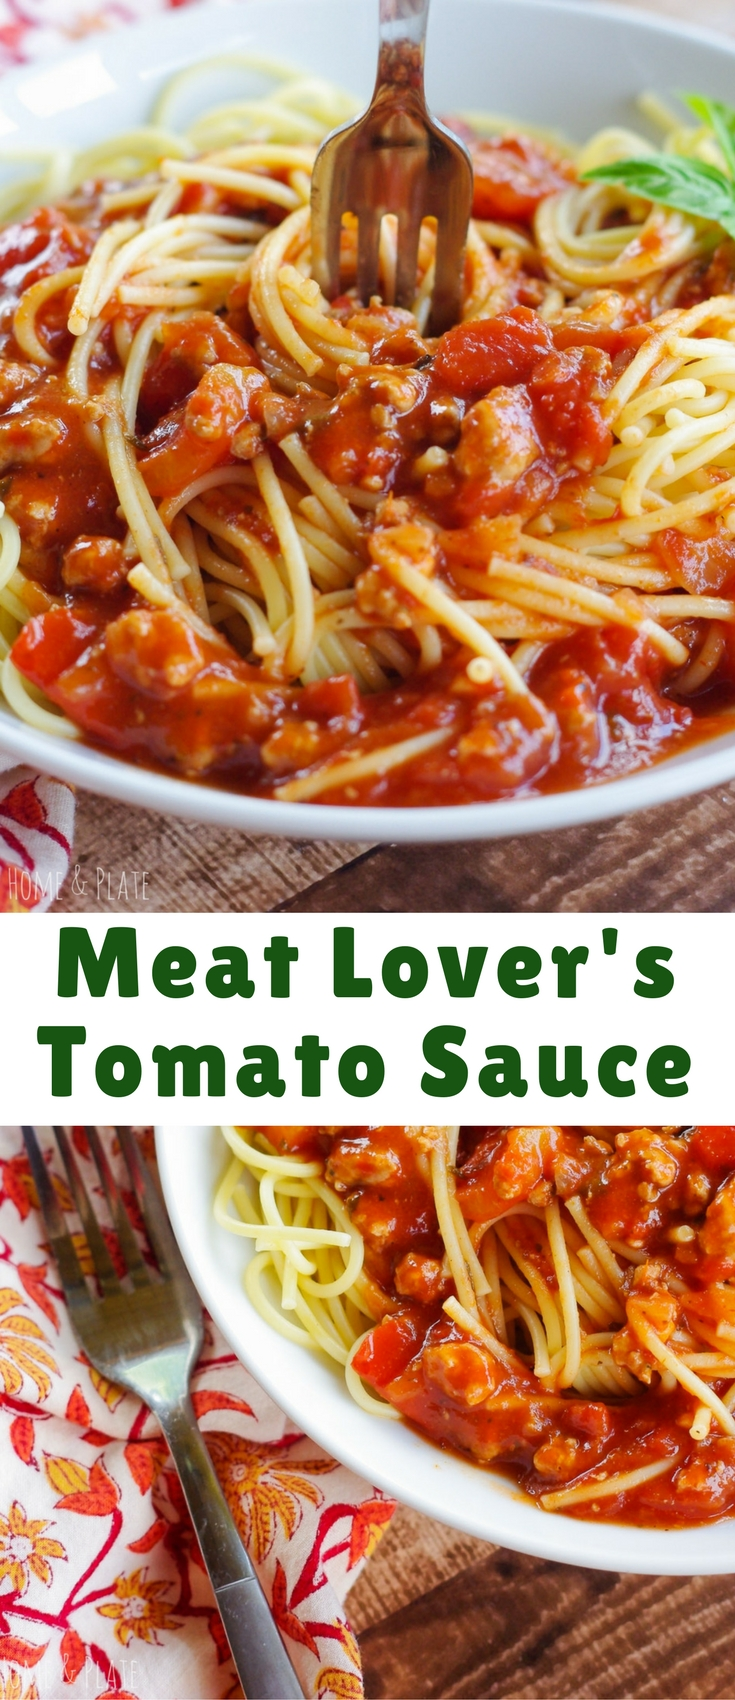 Never buy tomato sauce in a jar again! Tomato sauce made from scratch takes 30 minutes to make and tastes a million times better than the jarred variety.